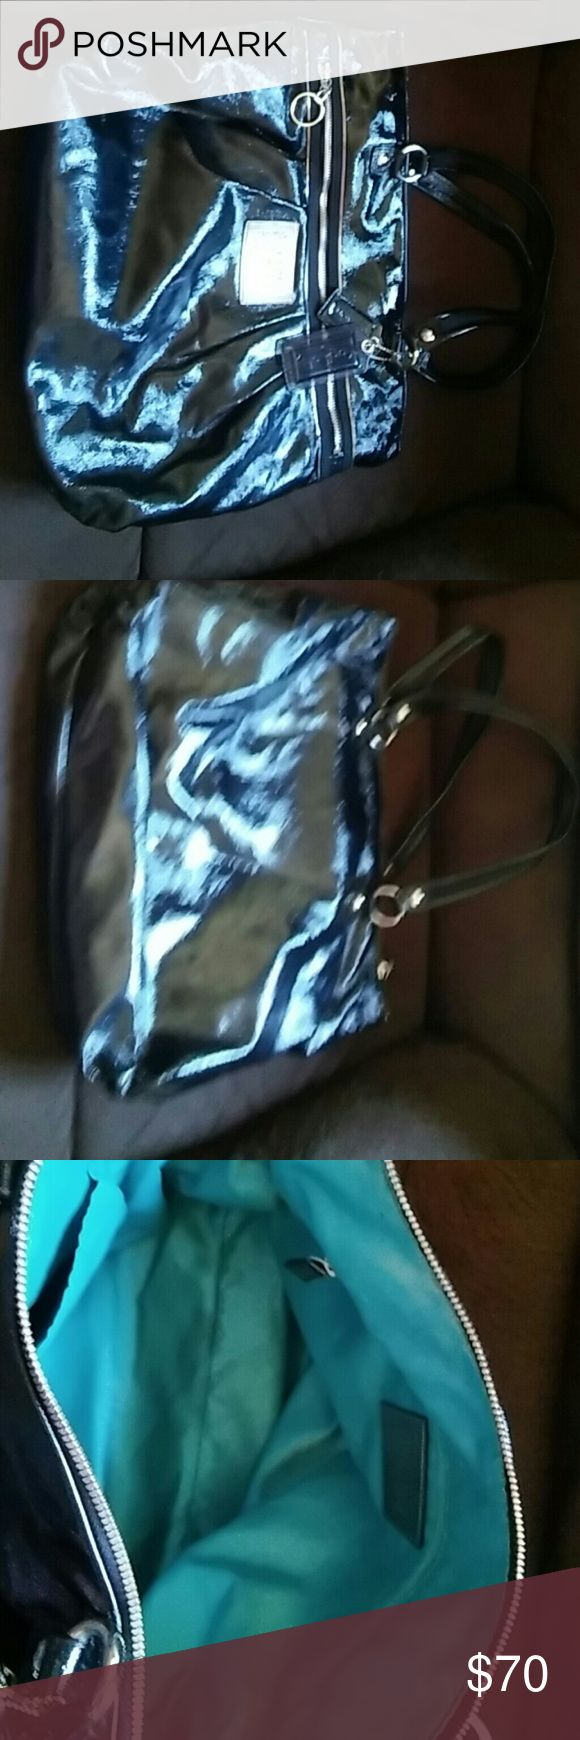 Black patent leather Coach Poppy tote All black large tote. In great condition. Well taken care of. And handbags come with it. Coach Bags Totes